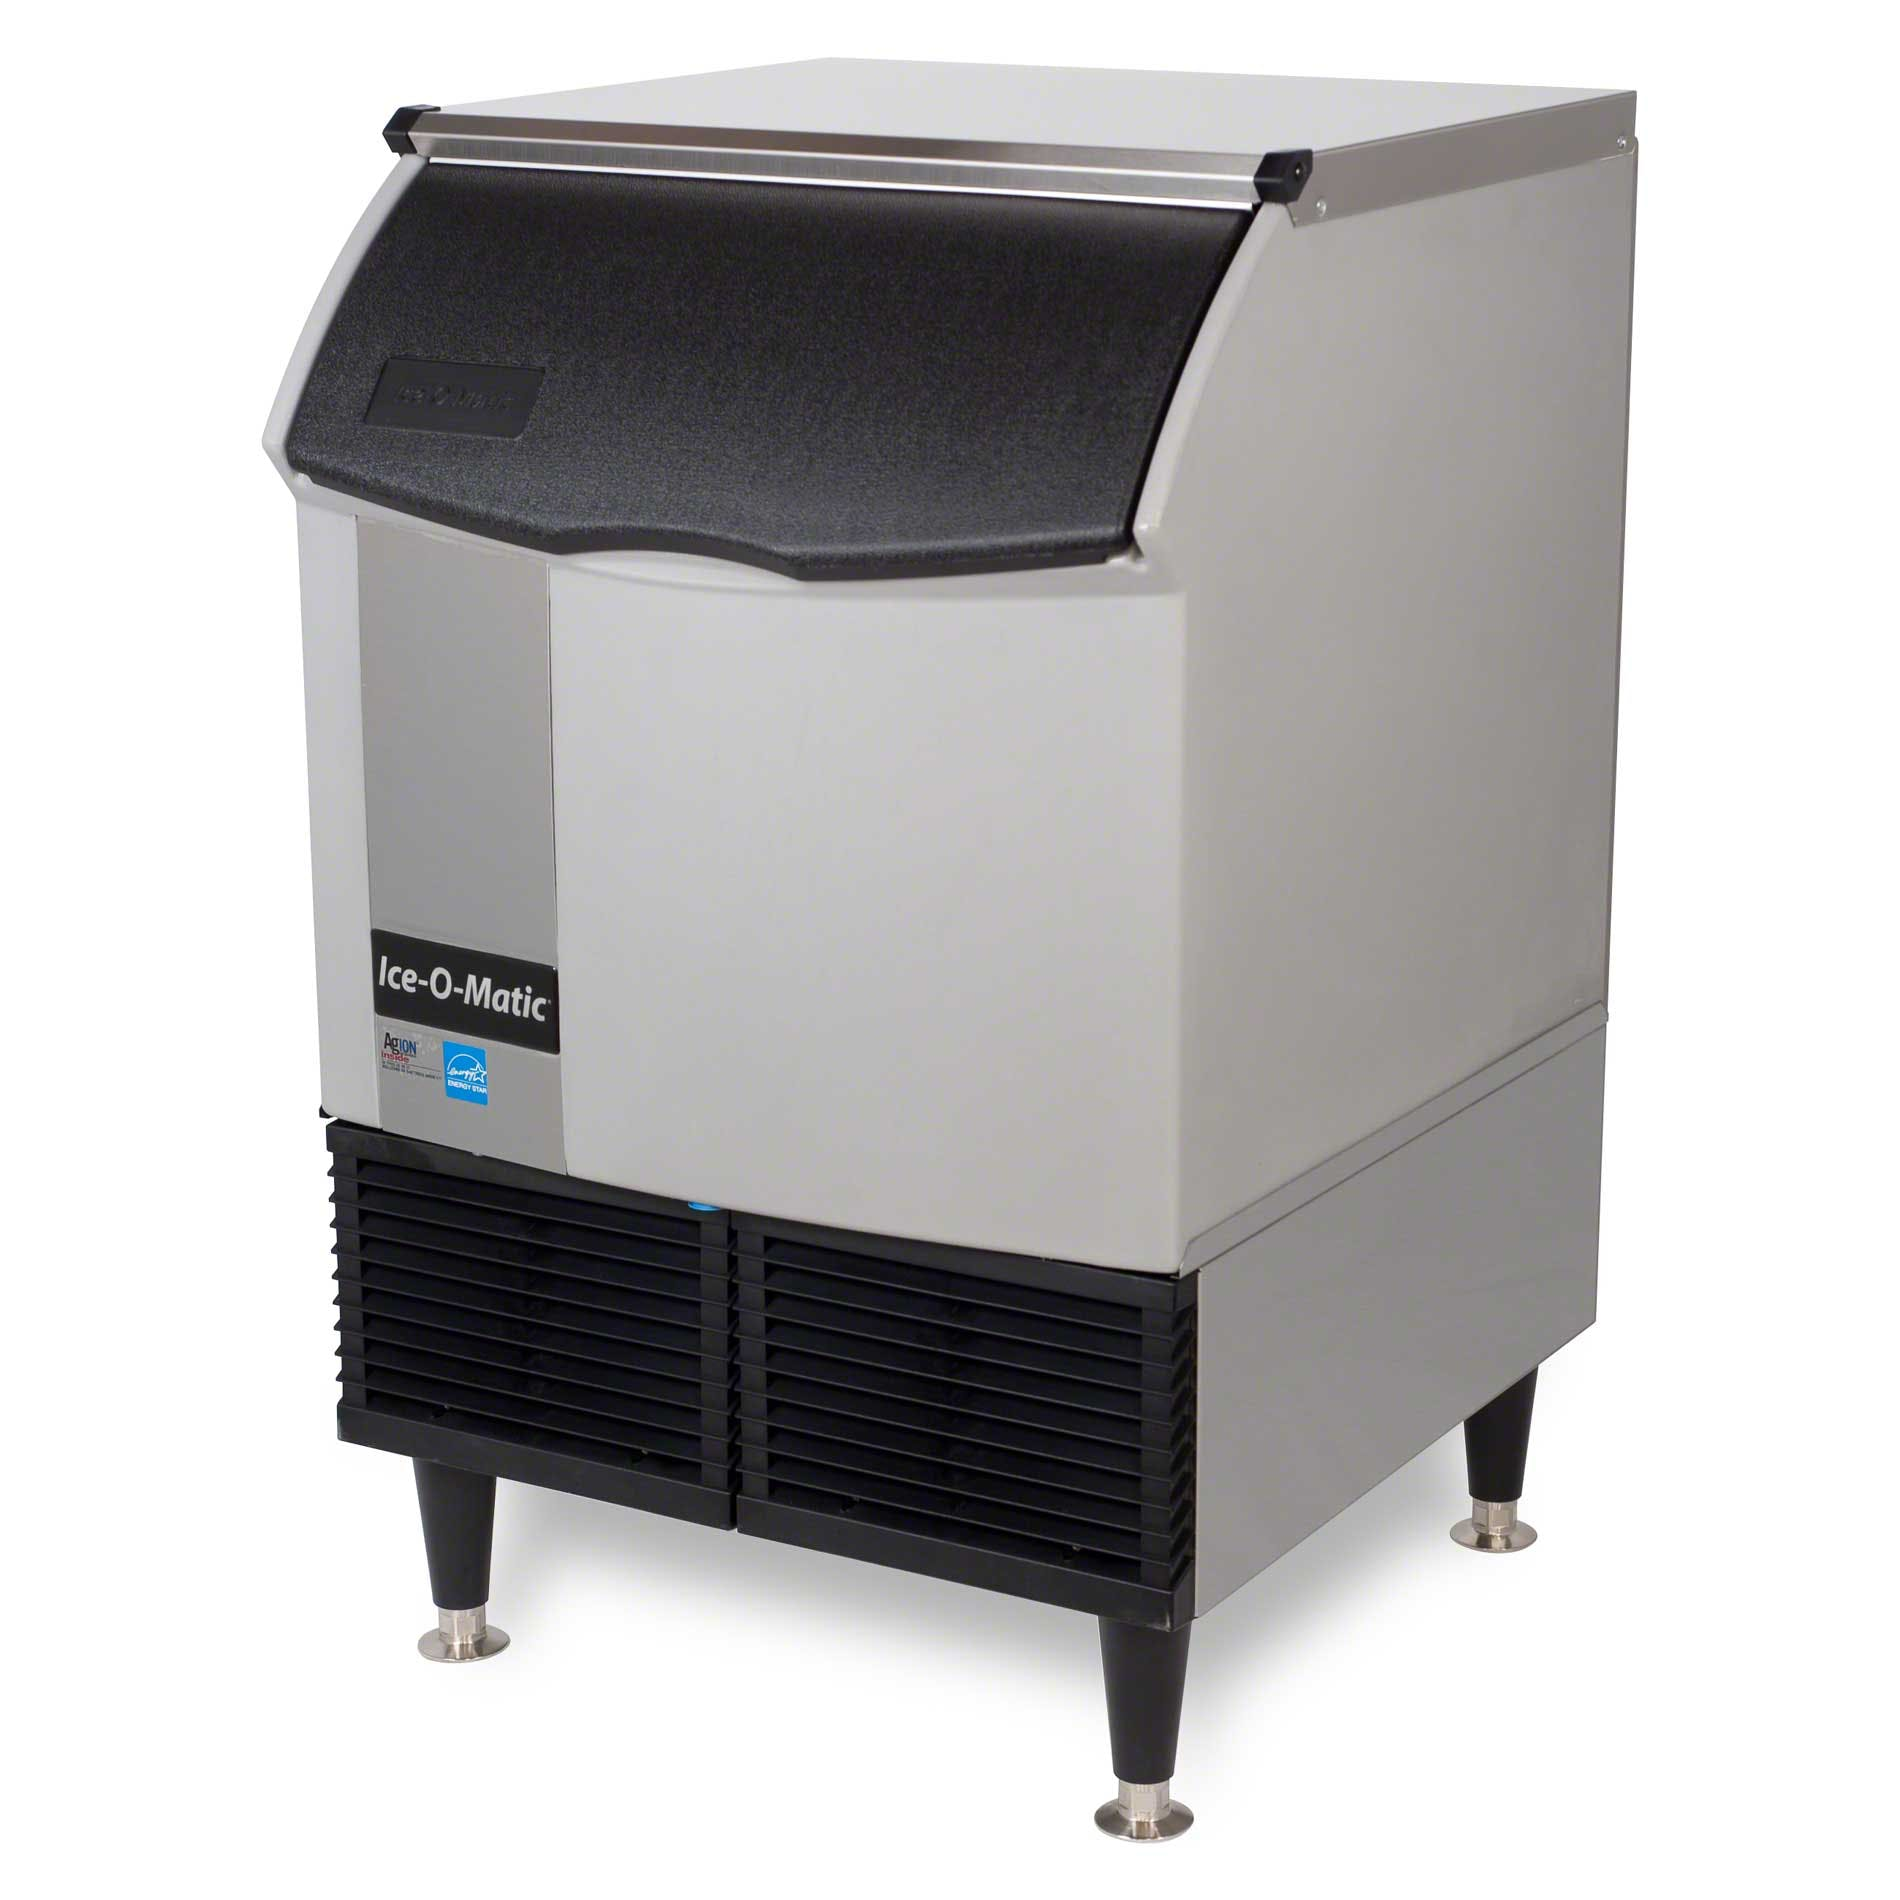 Ice-O-Matic - ICEU150FW 174 lb Self-Contained Full Cube Ice Machine - sold by Food Service Warehouse